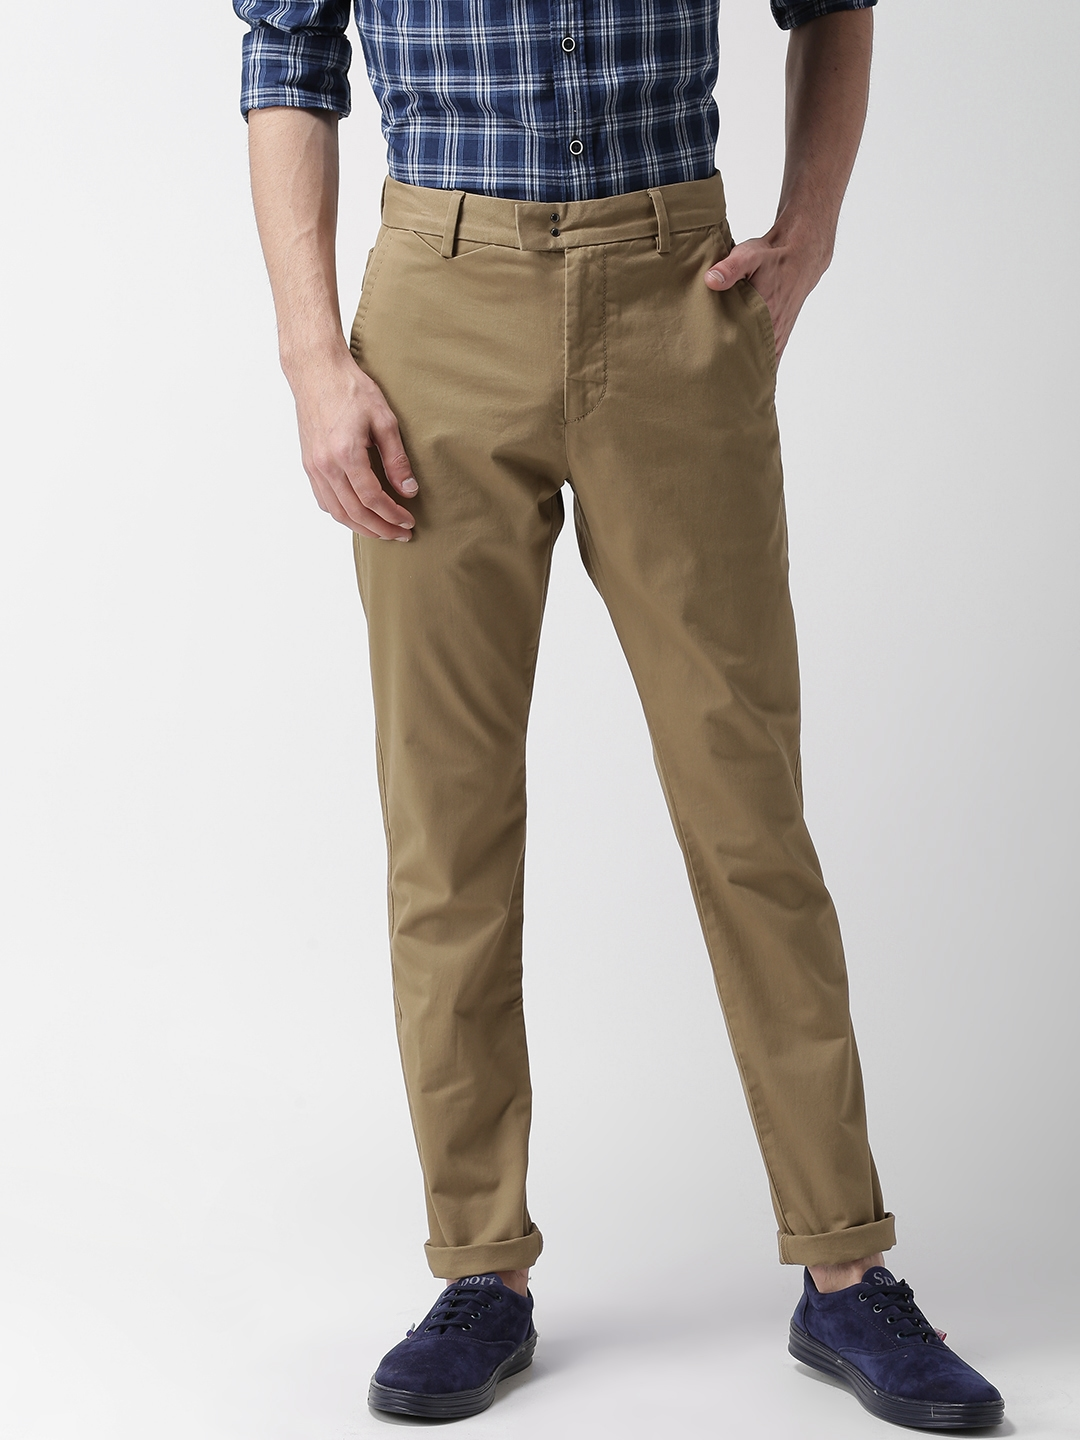 cdadfa100a4 Buy Levis Men Khaki Tapered Fit Solid 512 Chinos - Trousers for Men ...